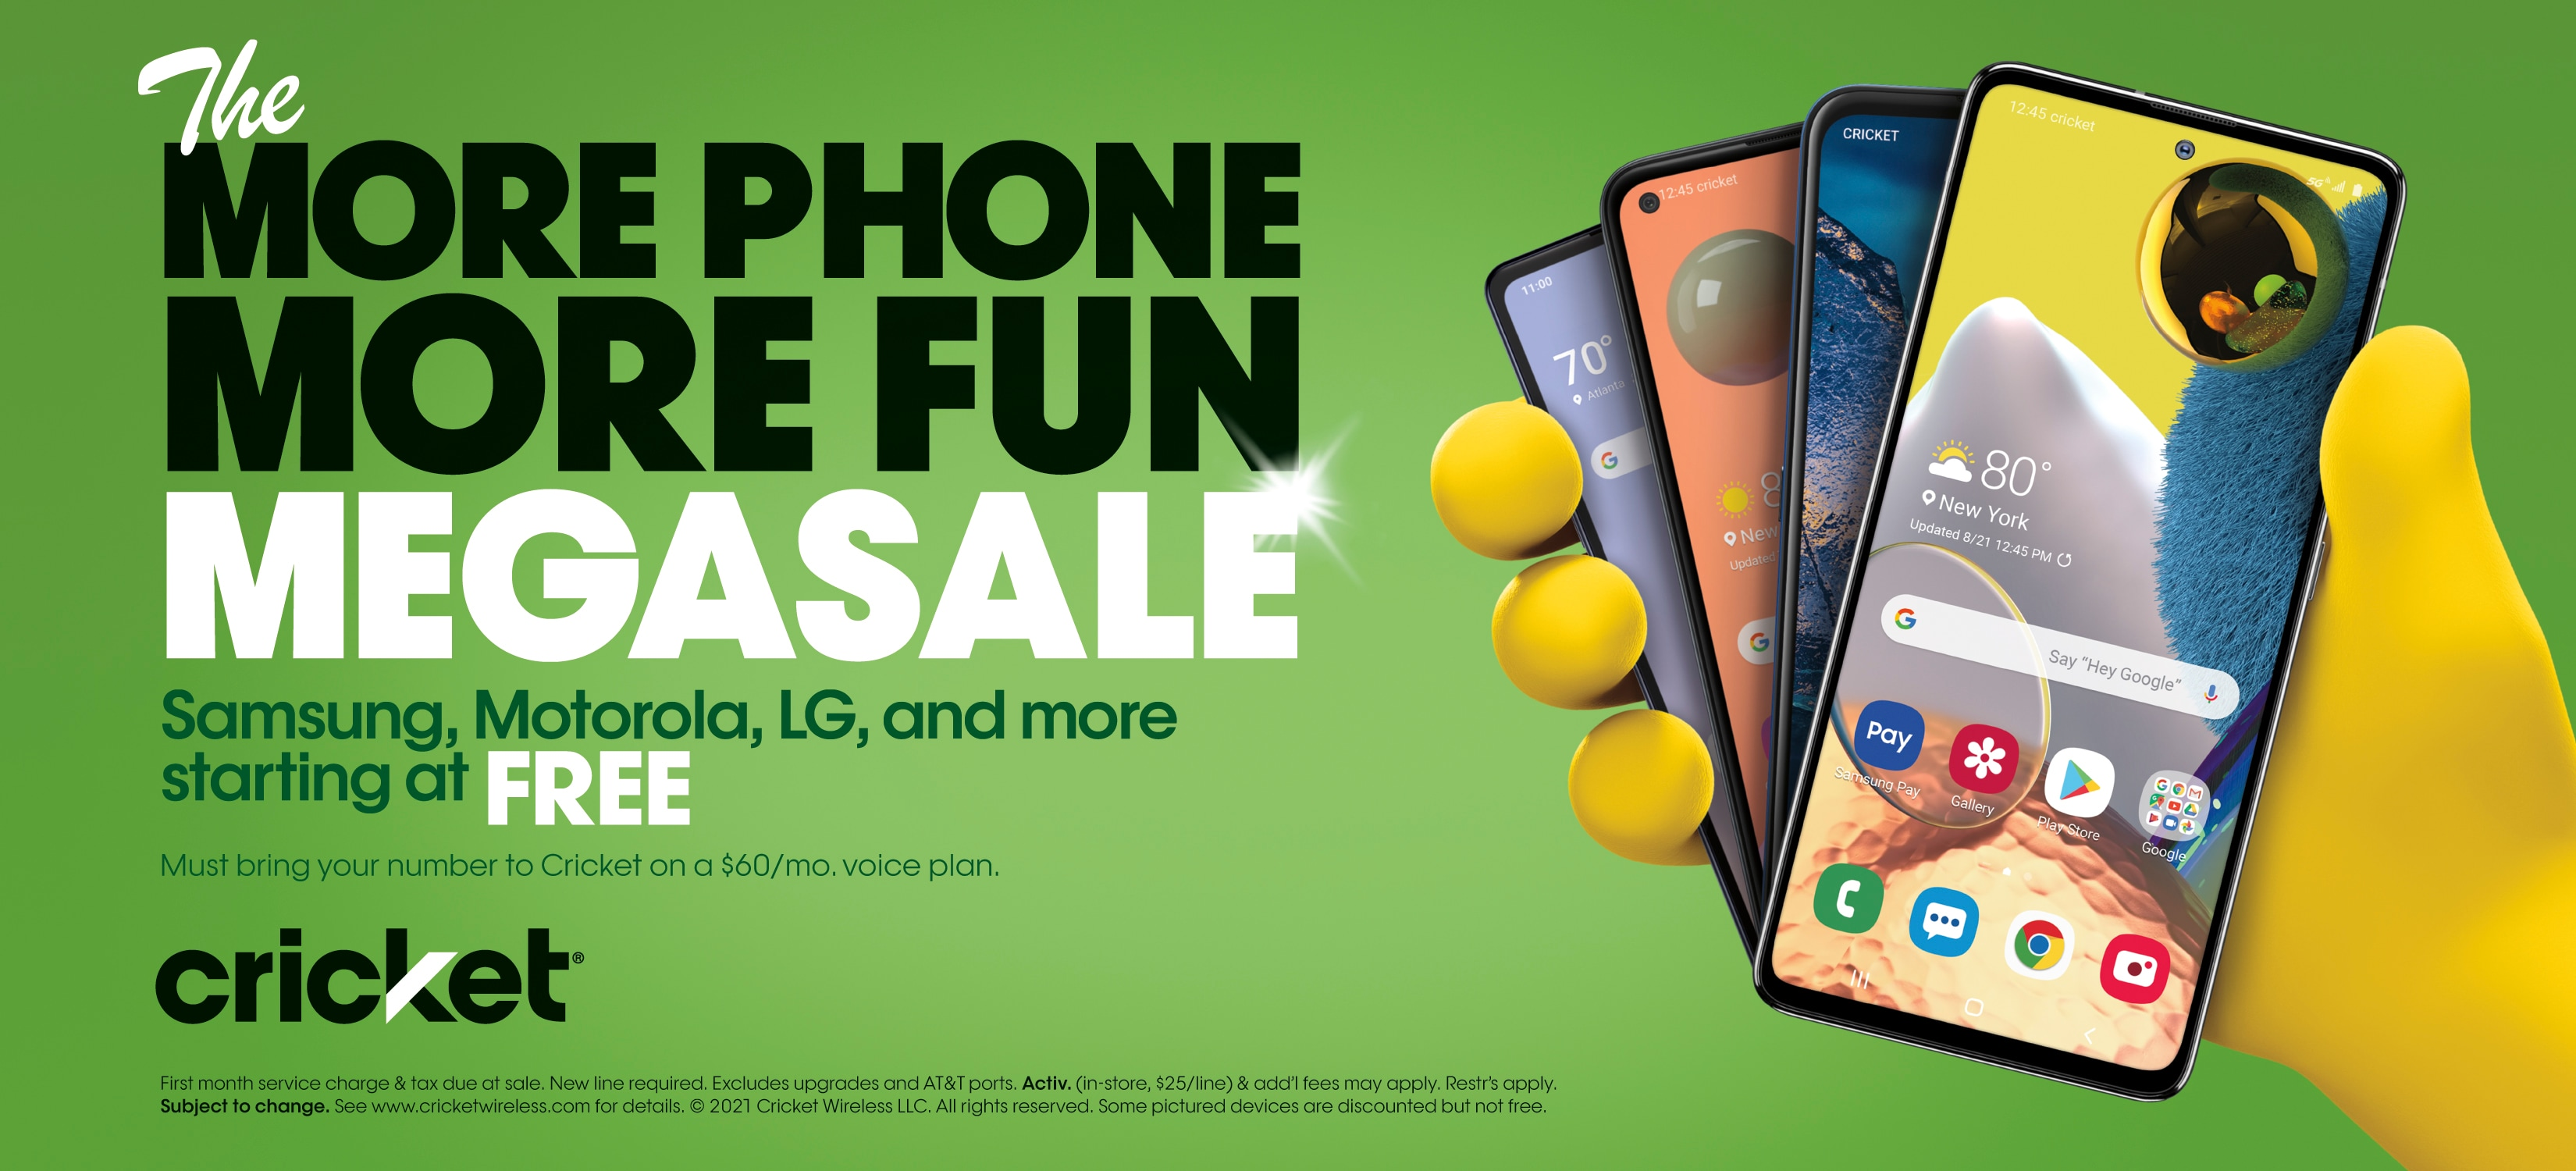 The MORE PHONE MORE FUN MEGASALE. Samsung, Motorola, LG, and more starting at FREE. Must bring your number to Cricket on a $60/mo. voice plan. First month service change & tax due at sale. New line required. Excludes upgrades and AT&T ports. Activ. (in-store $25/line) & add'l fees may apply. Restr's apply. Subject to change. See www.cricketwireless.com for details. Some pictured devices are discounted but not free.